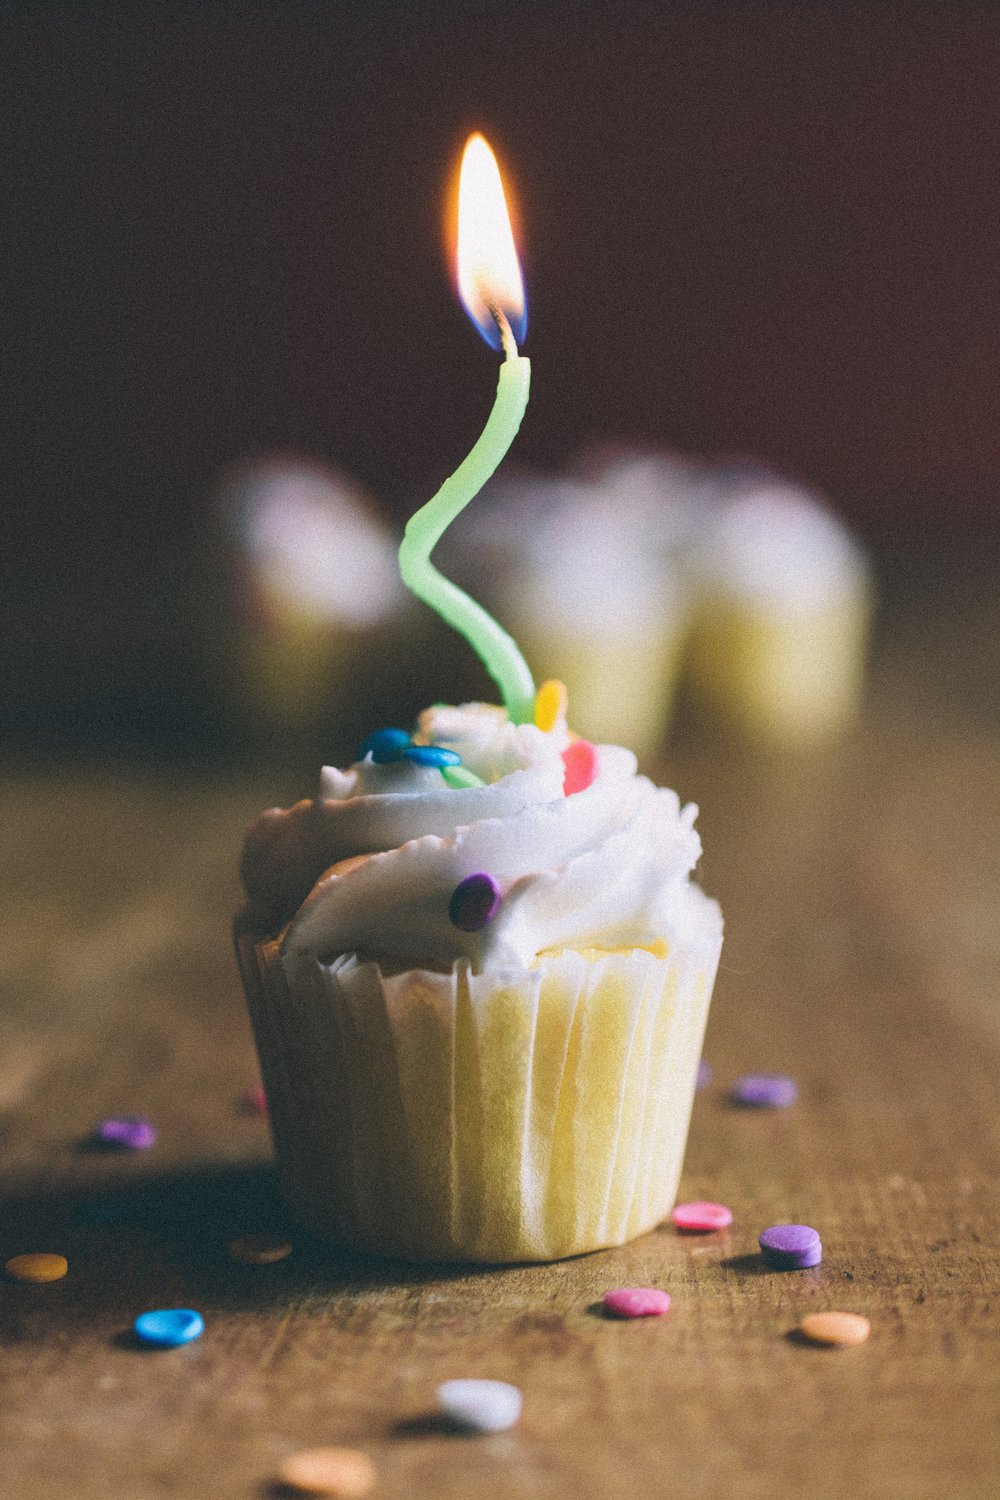 Ideas For Celebrating On The Actual Birthday